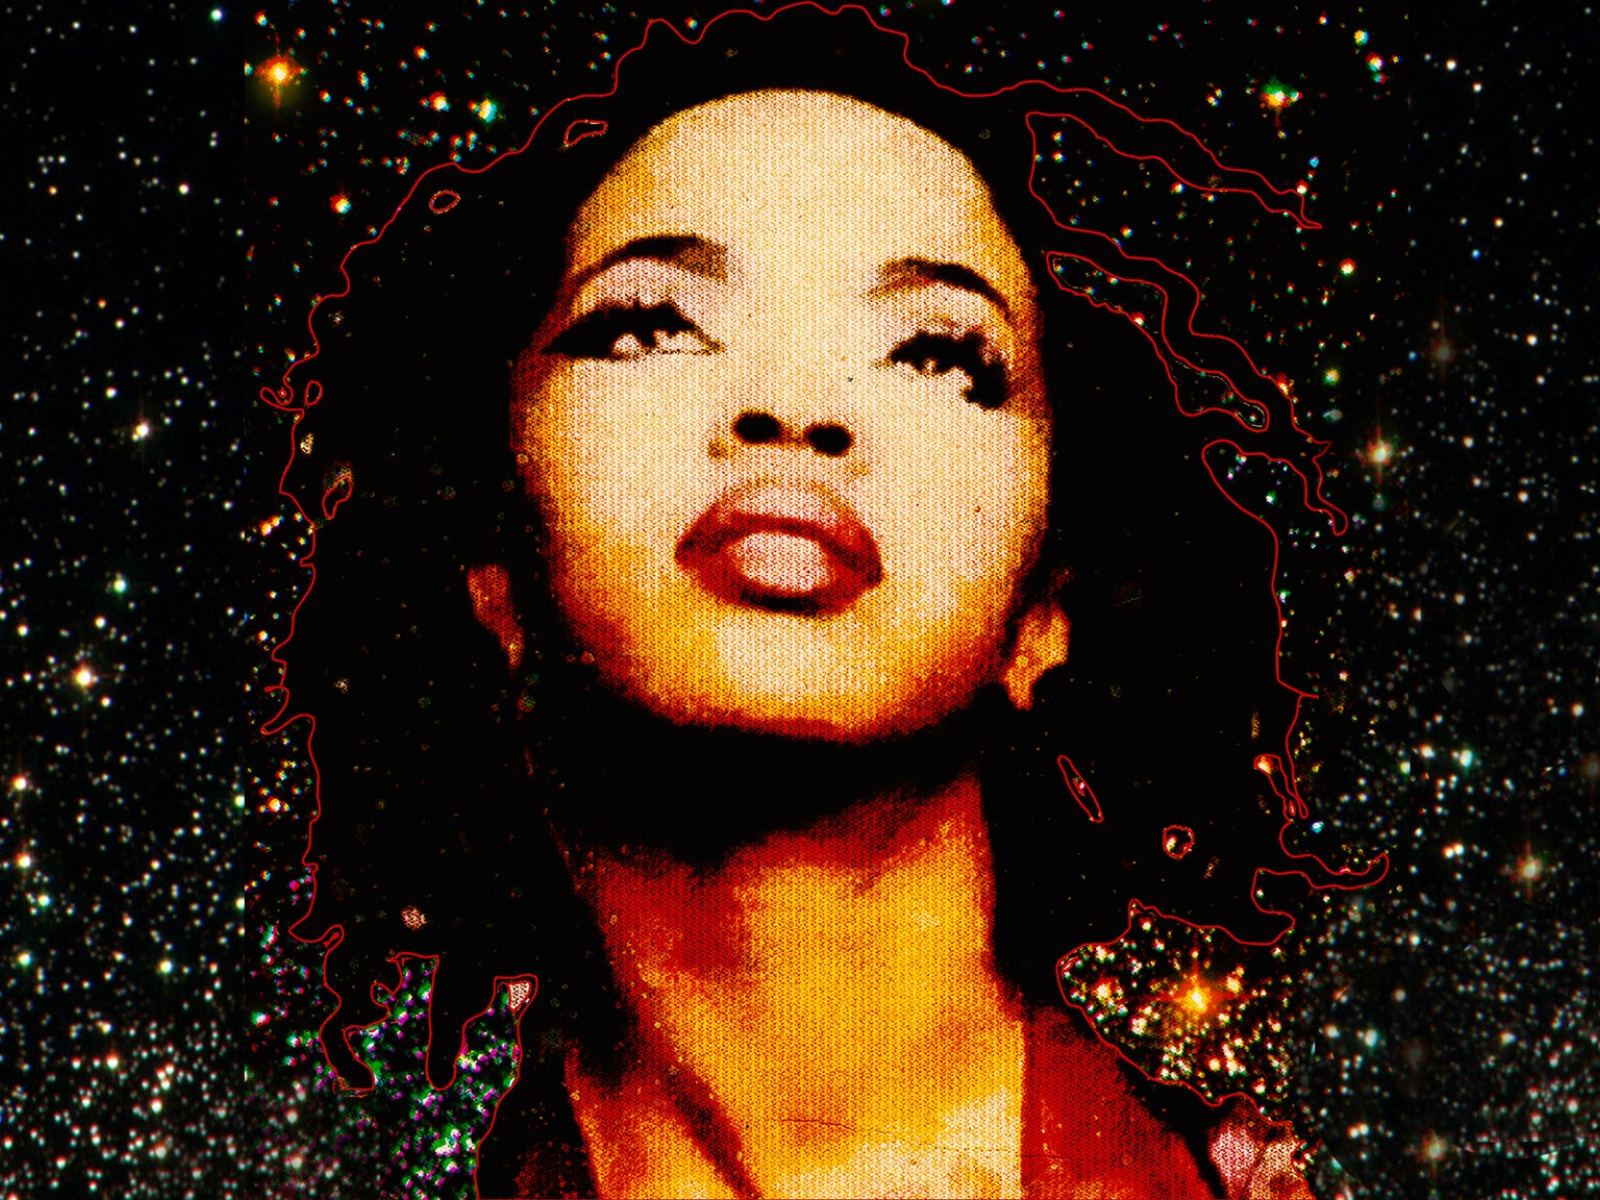 Main image for event titled Ms. Lauryn Hill & H.E.R.